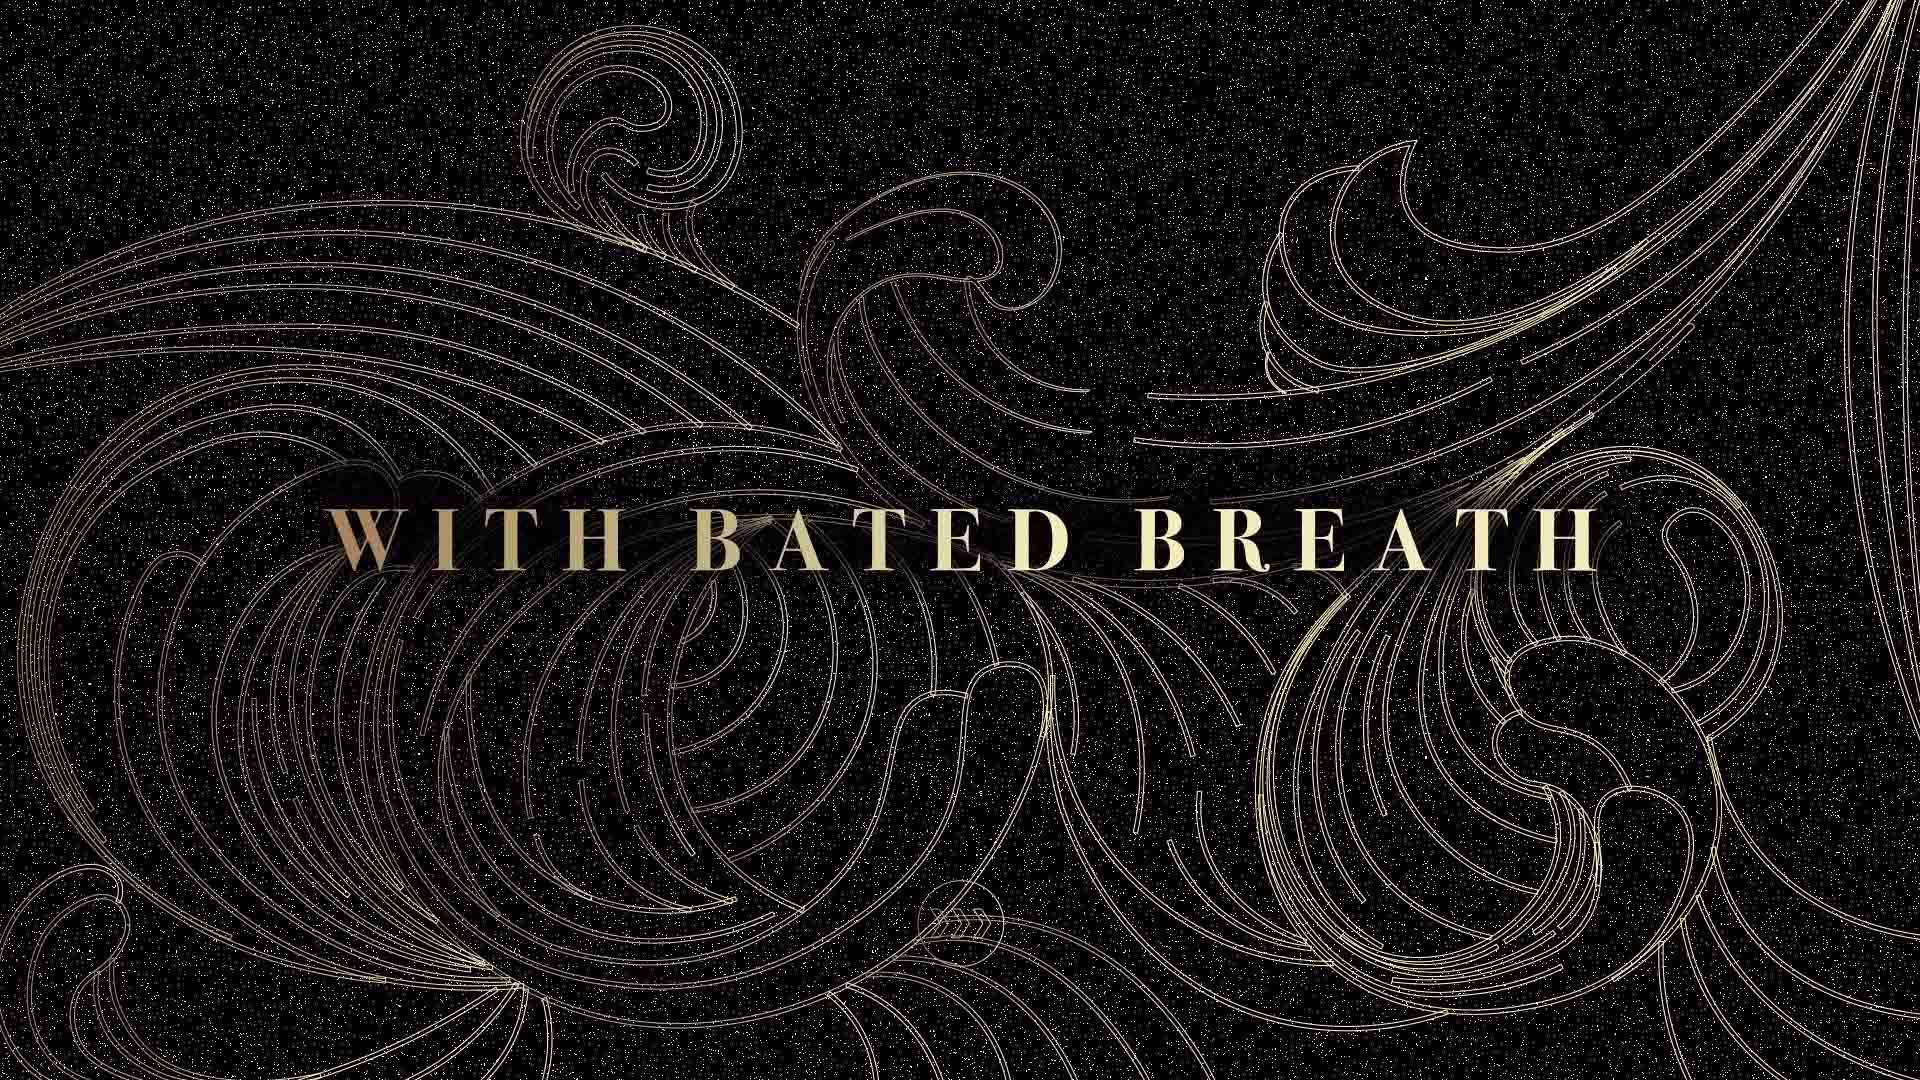 With Bated Breath